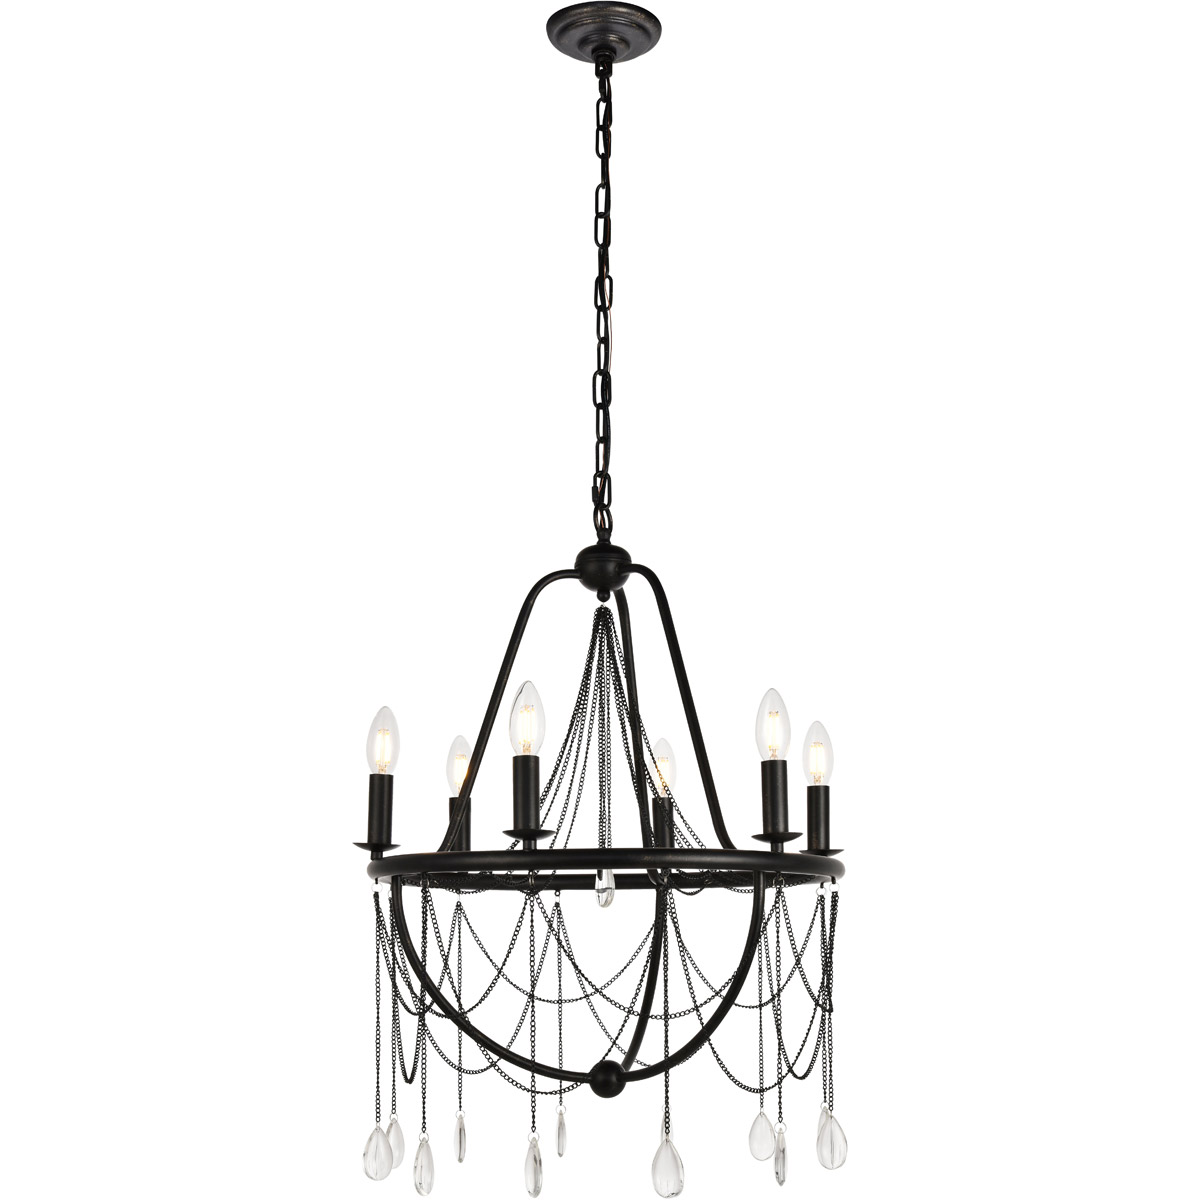 Details About Crystal Chandelier Wrought Iron Kitchen Dining Room Lighting Fixture 6 Light 24